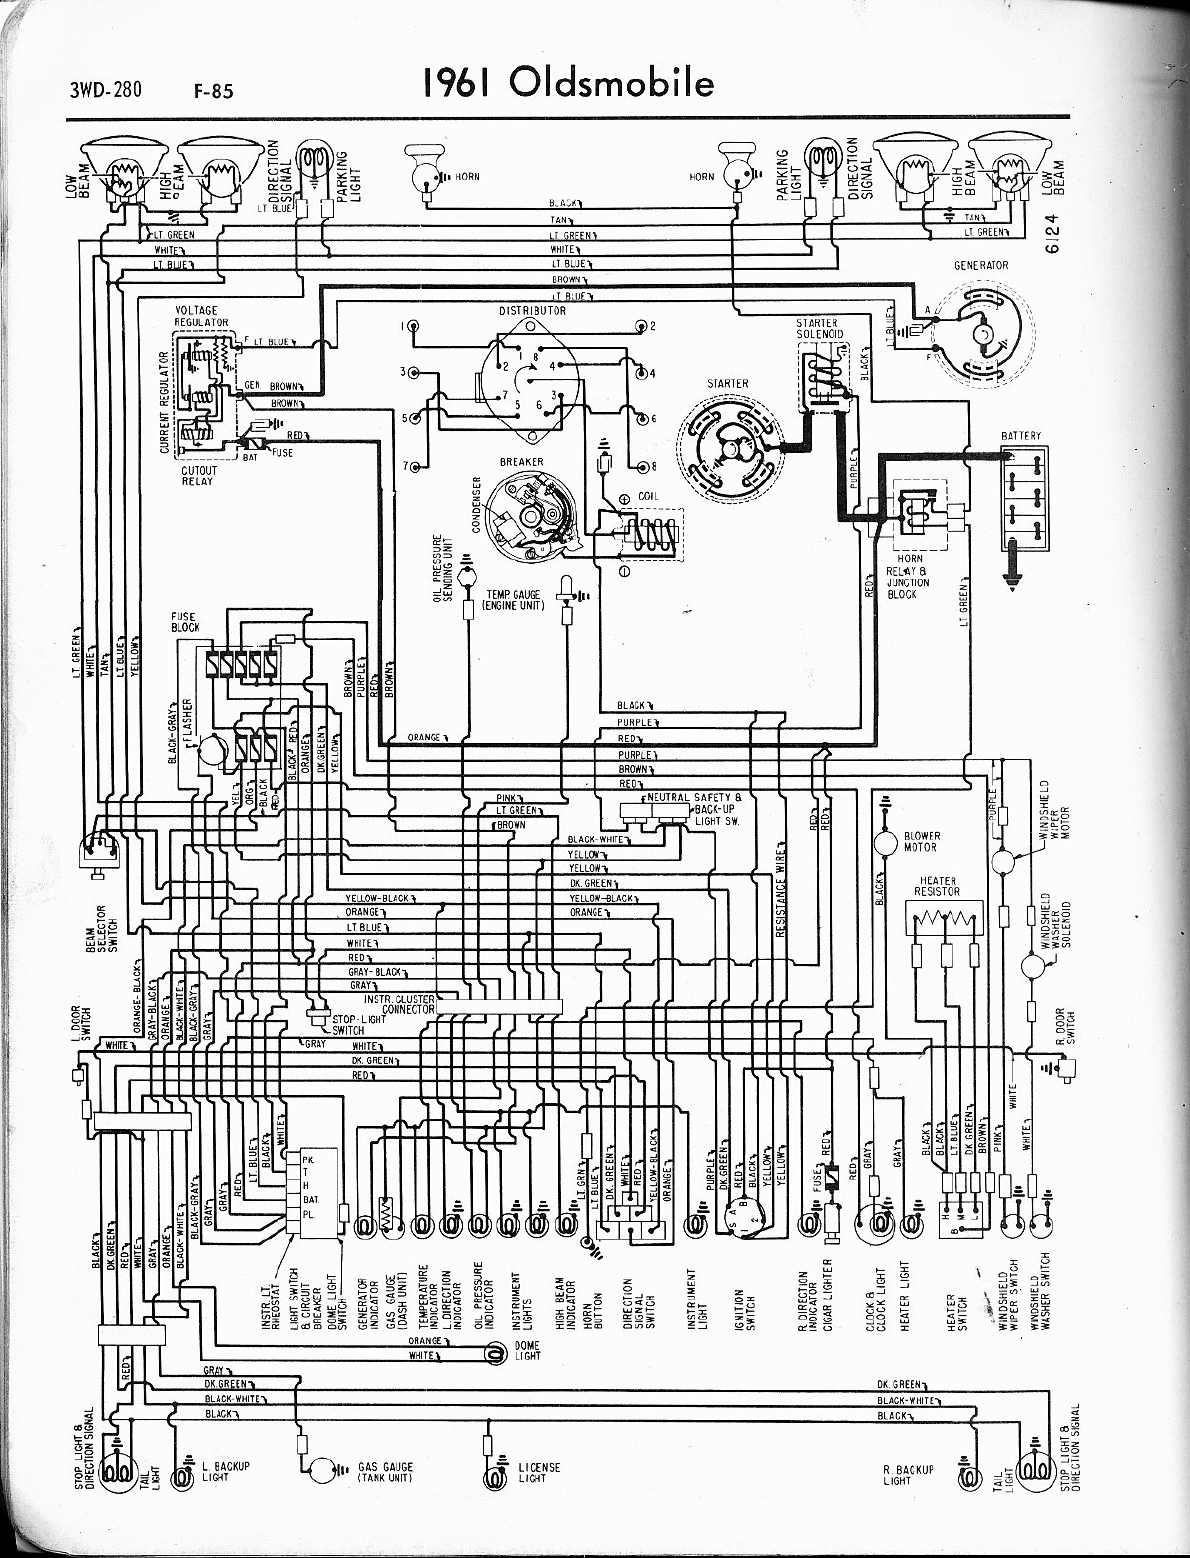 oldsmobile cutlass 1961 1965 misc documents wiring diagrams pdf rh manuals co 1972 oldsmobile cutlass wiring diagram 1967 oldsmobile cutlass wiring diagram